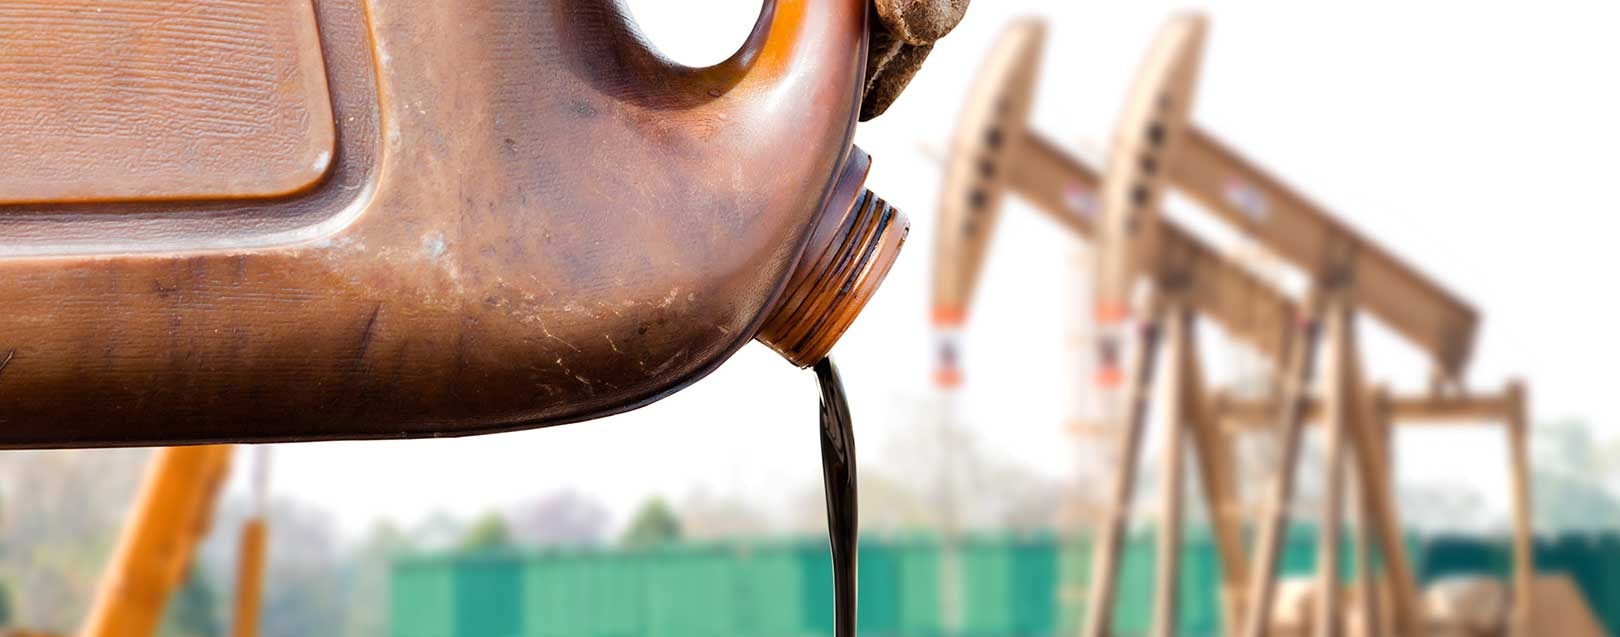 Oil prices decline on concerns of oversupply